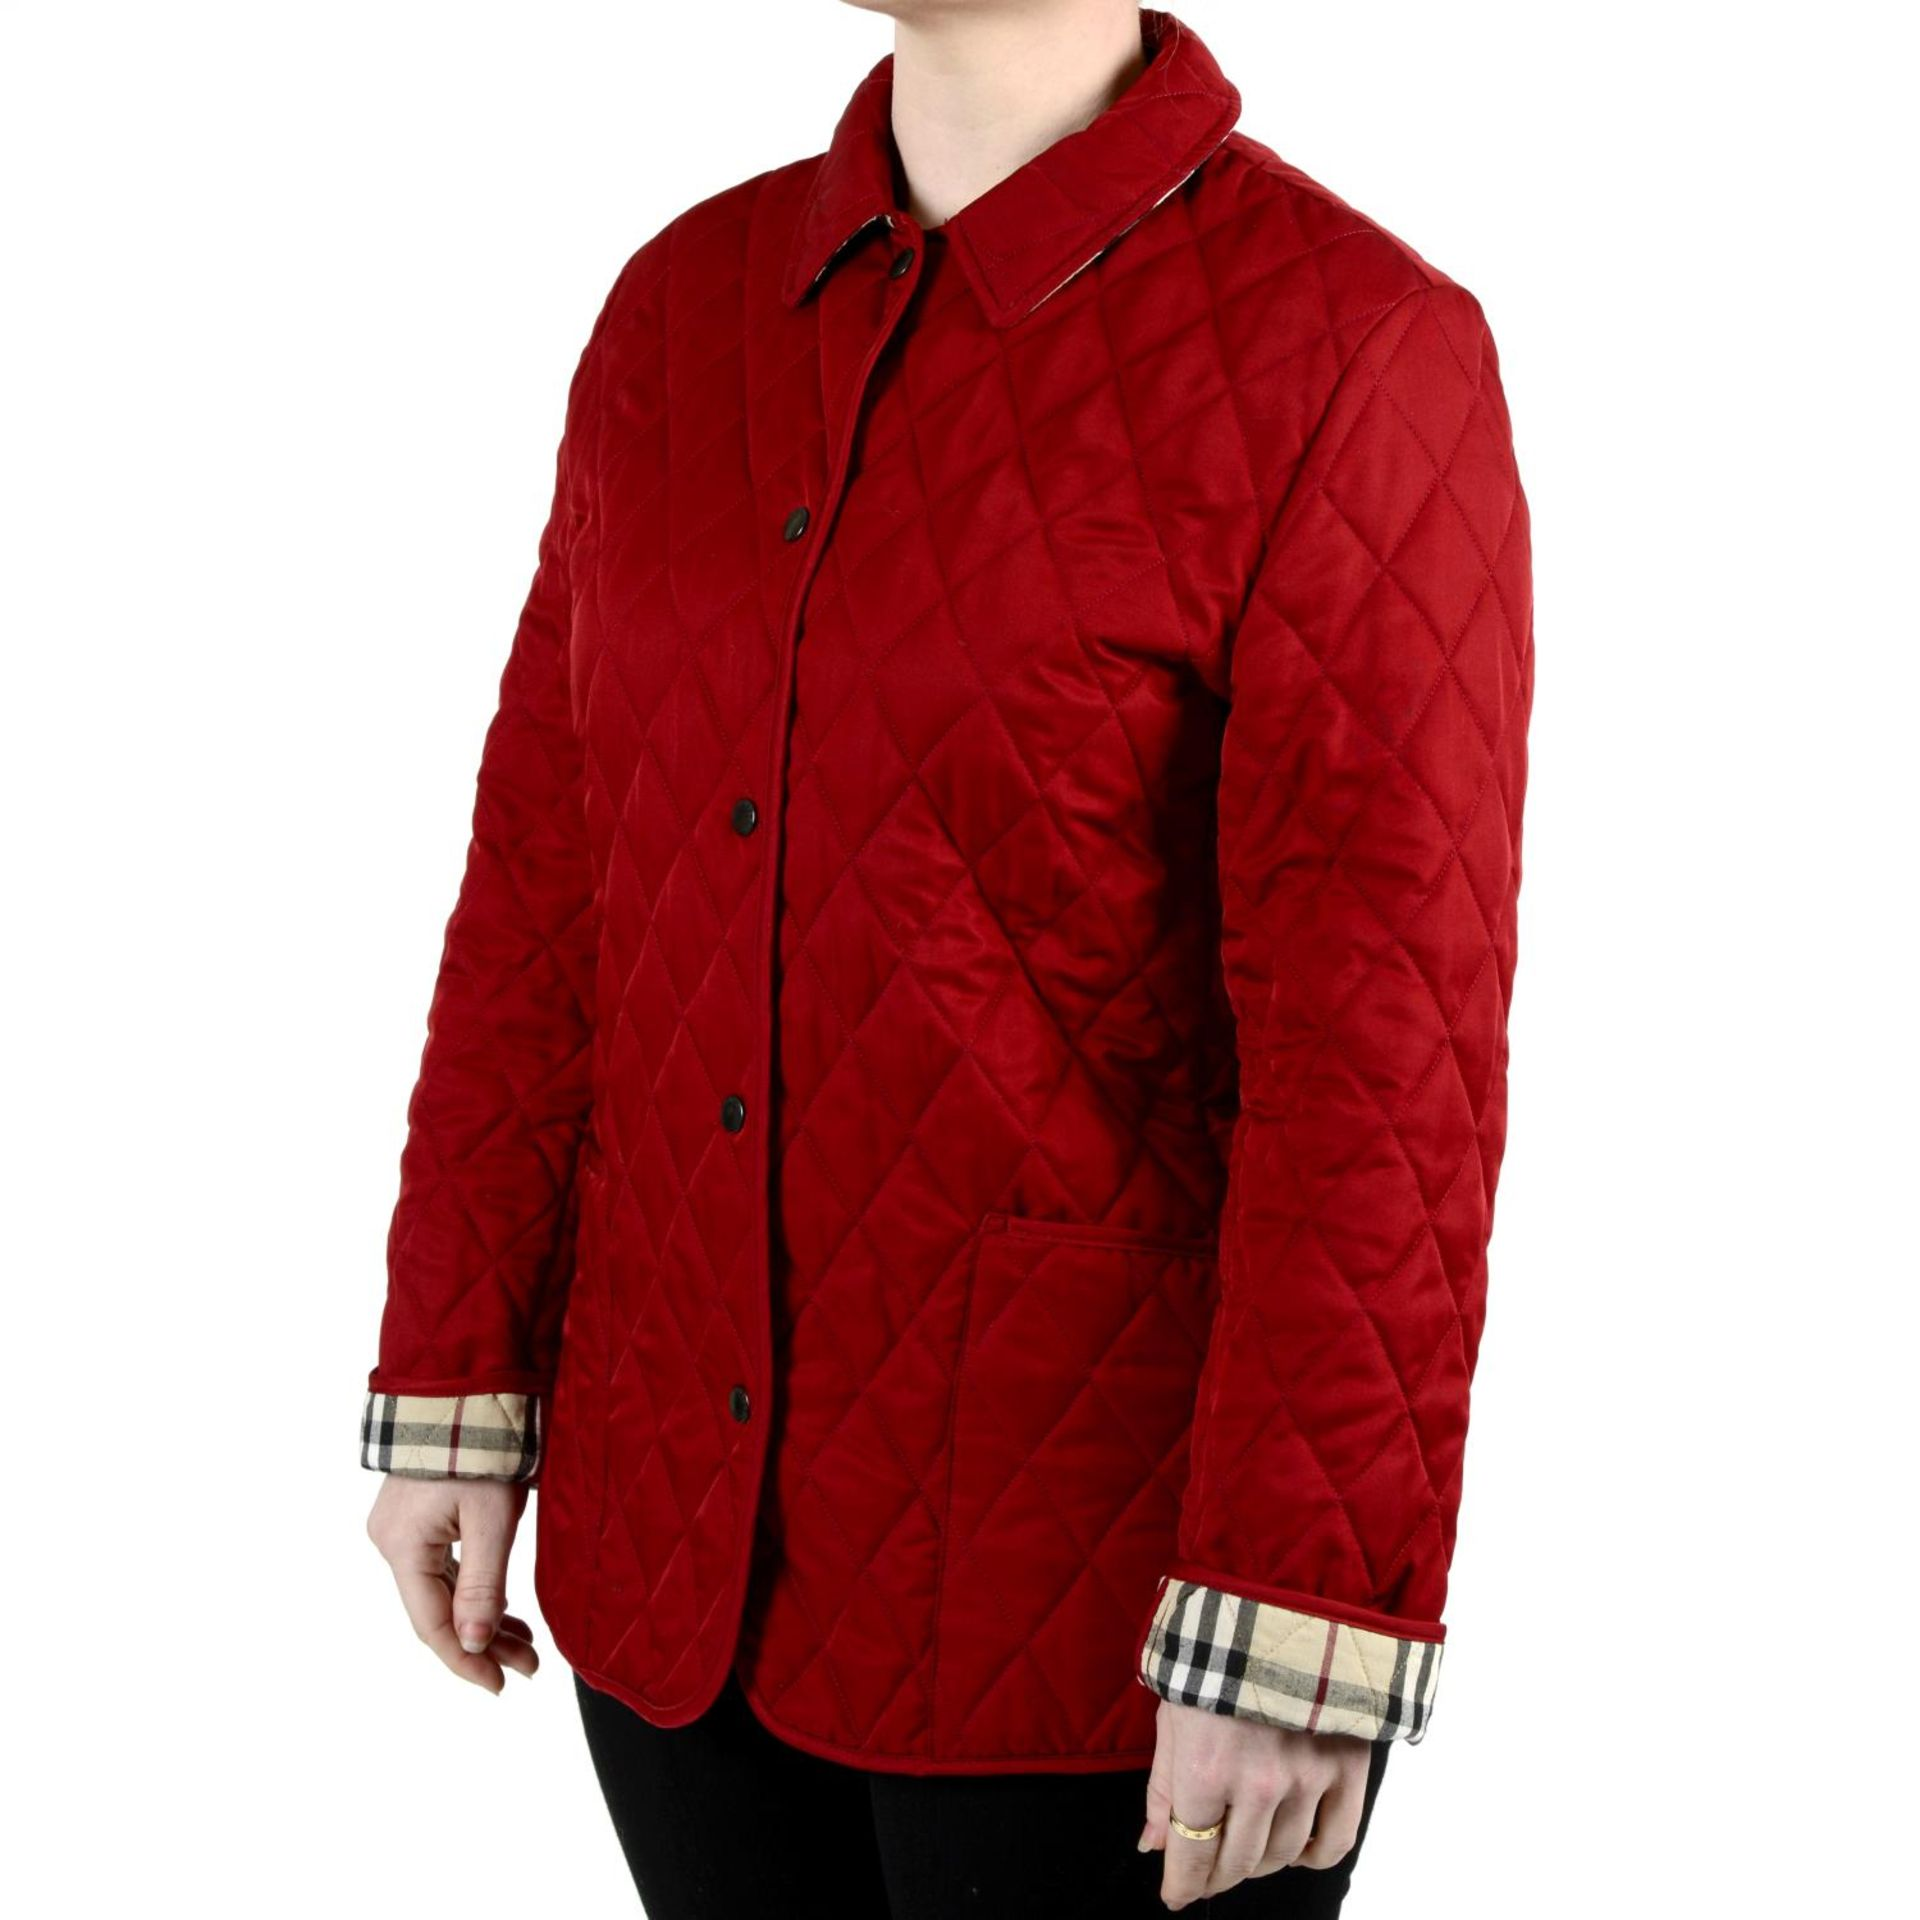 BURBERRY - a red quilted jacket. - Image 3 of 4